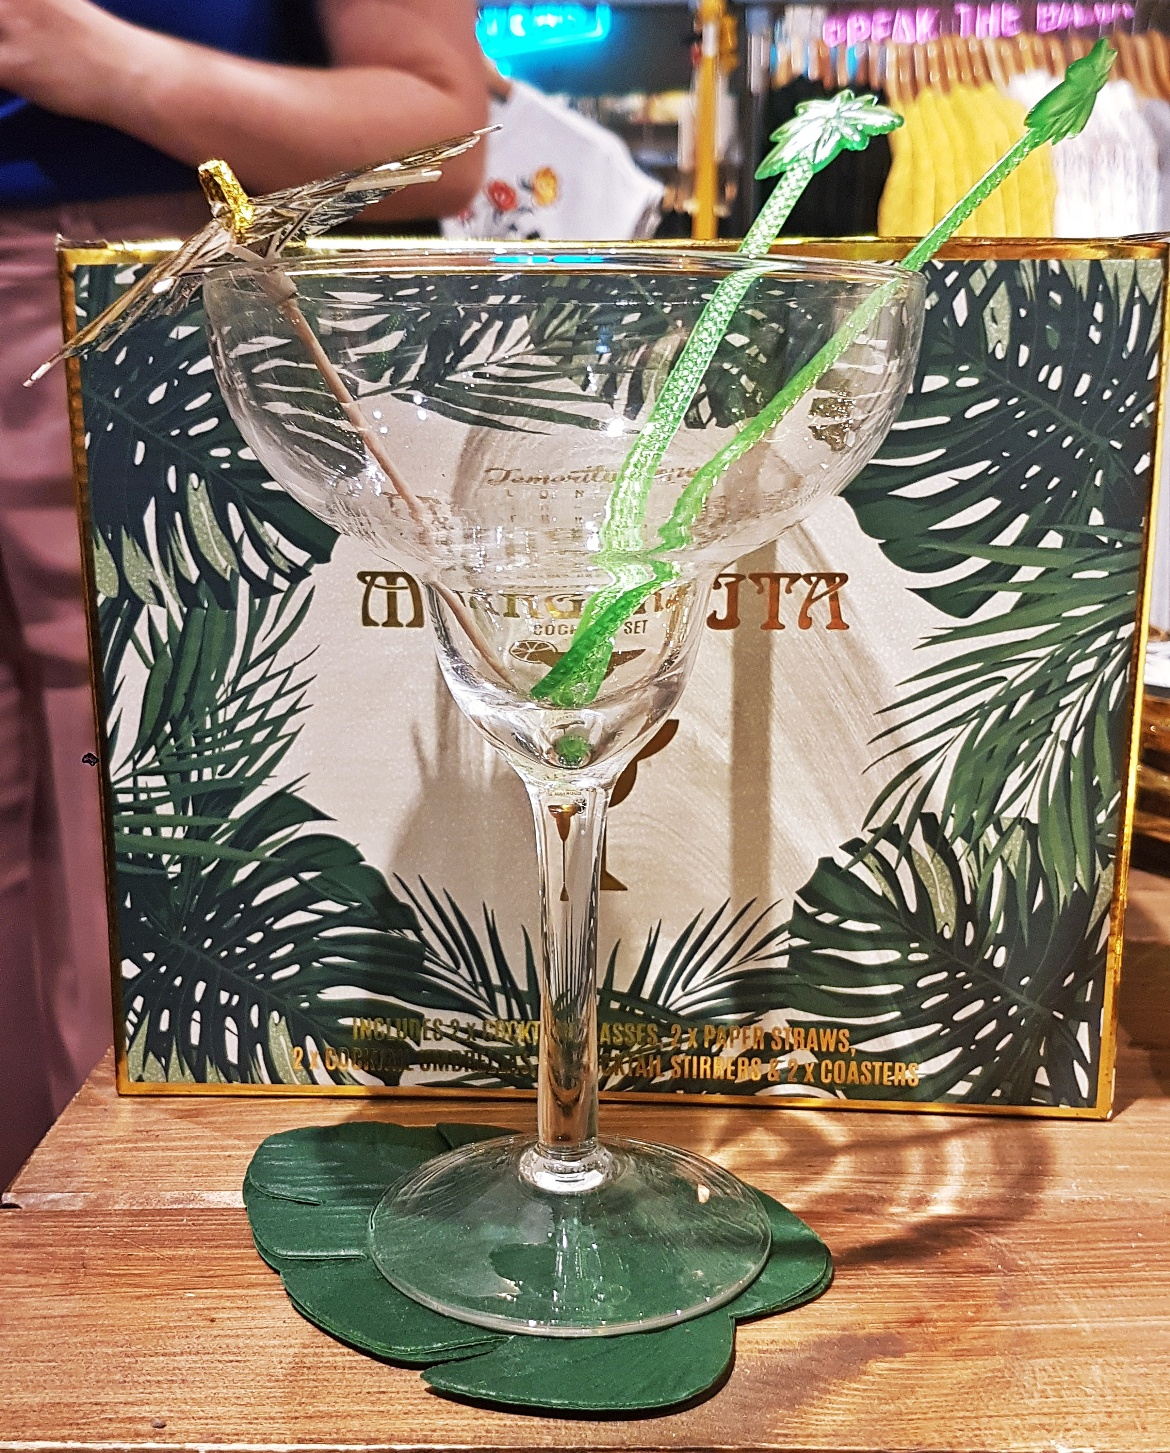 Margarita glass - Tune in with Joy the Store, Leeds shop review by BeckyBecky Blogs